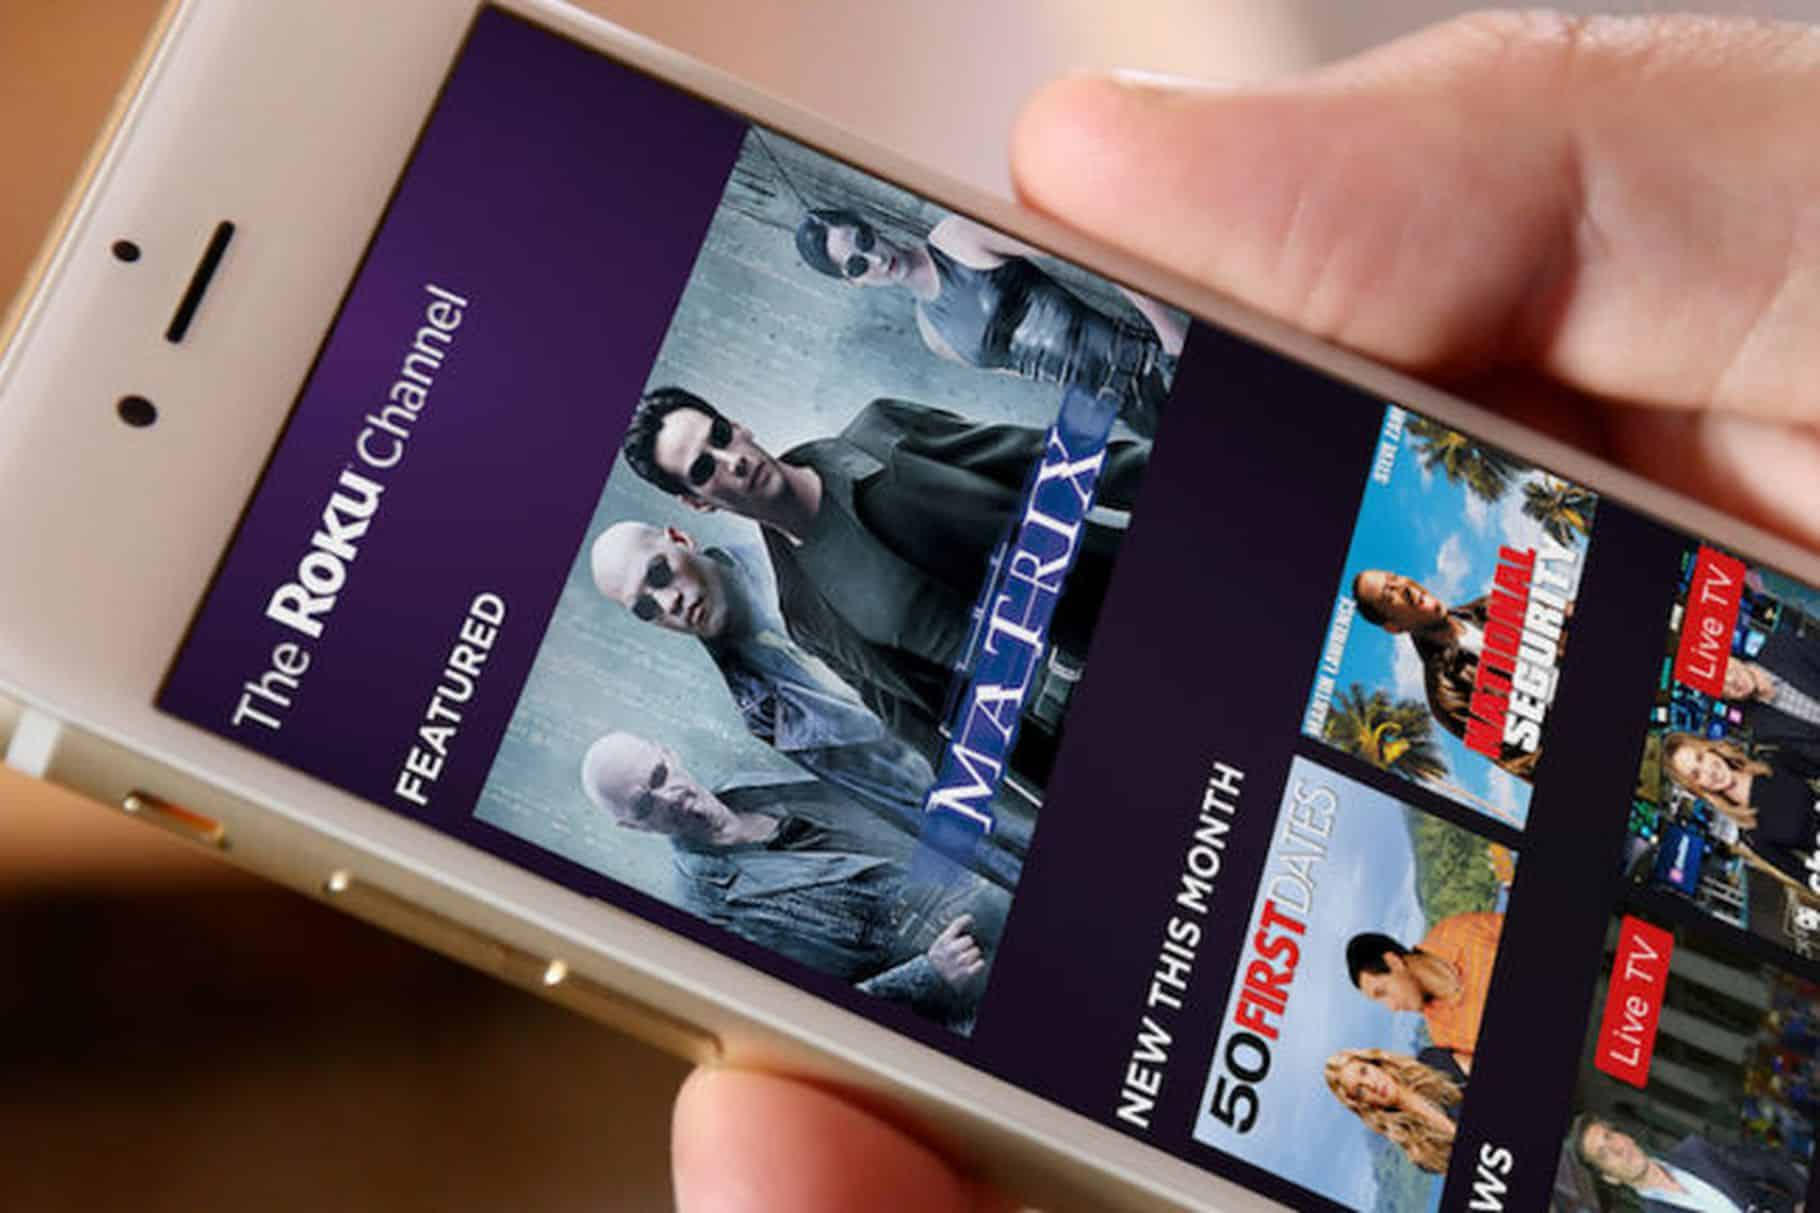 You Can Now Enjoy Roku's Free Channel on your iOS Devices